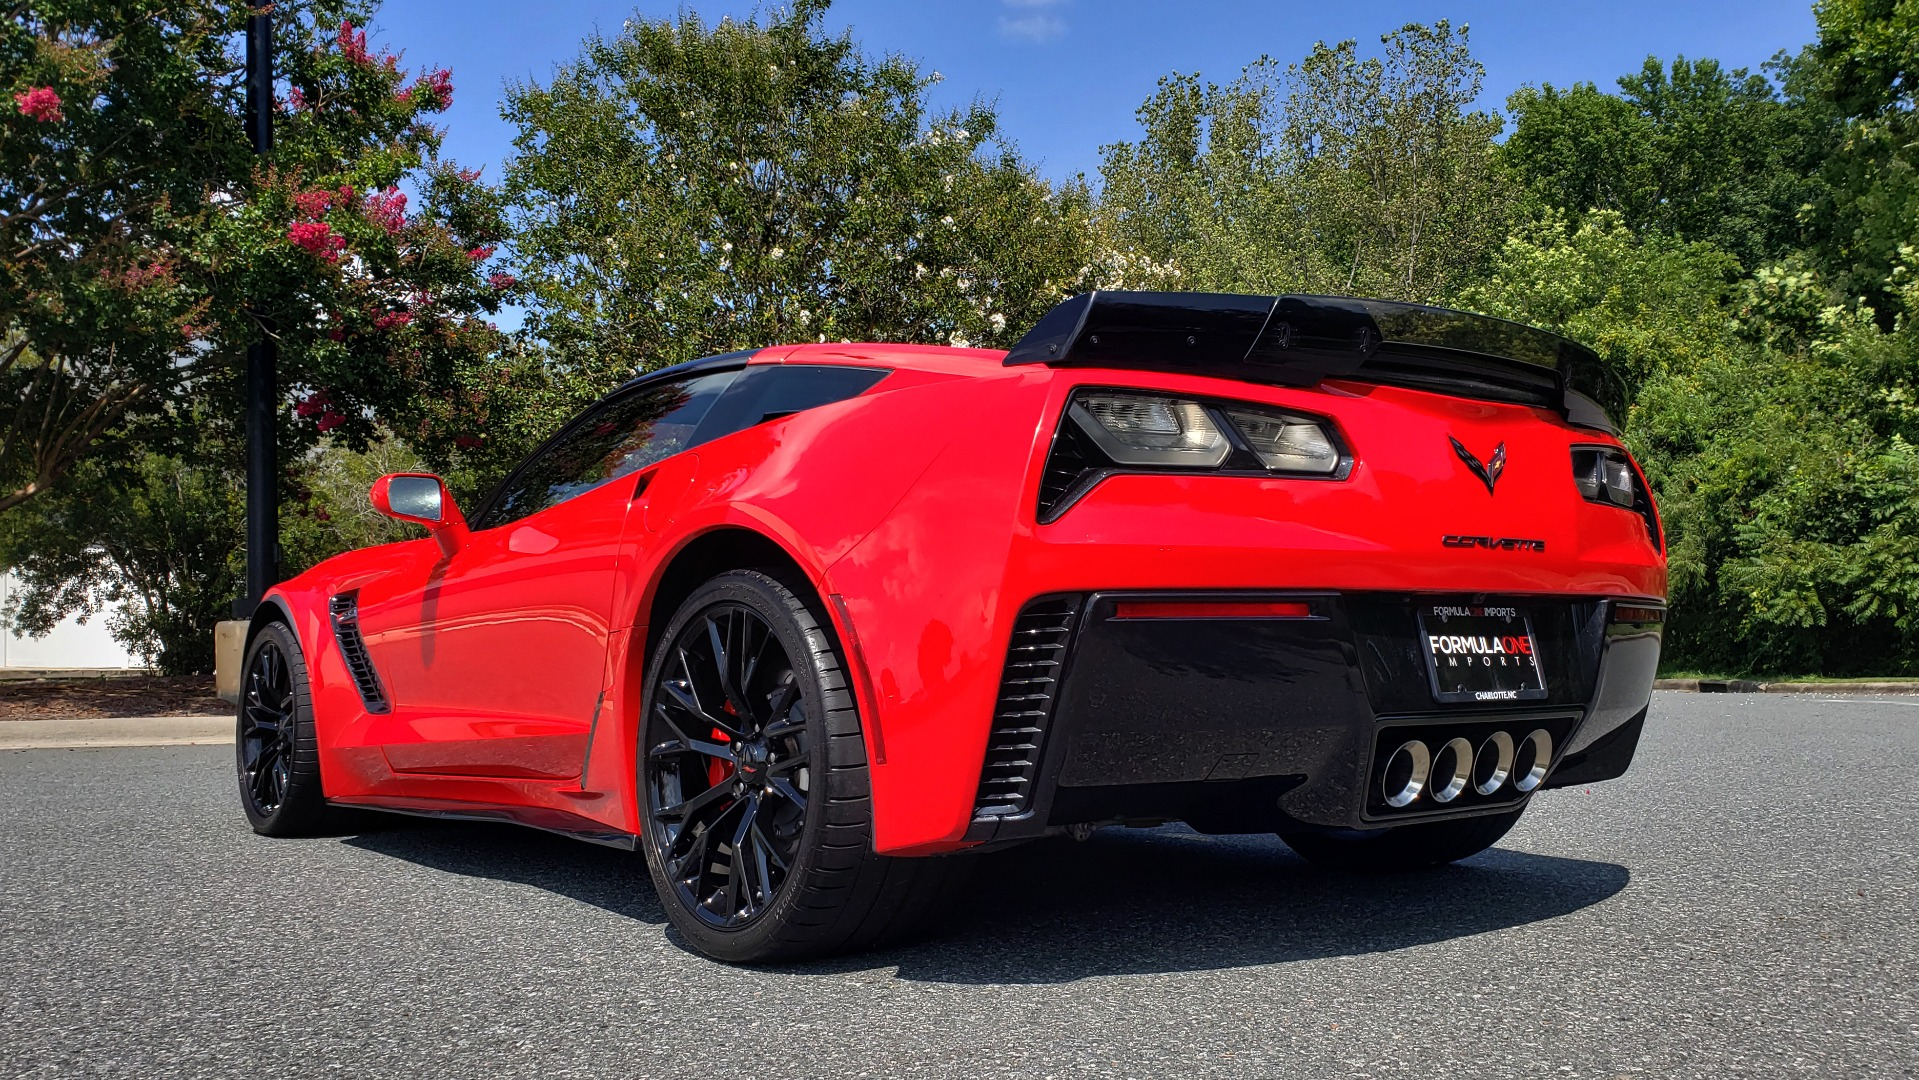 Used 2016 Chevrolet CORVETTE Z06 3LZ / 6.2L SUPERCHARGED 650HP / NAV / BOSE / REARVIEW for sale Sold at Formula Imports in Charlotte NC 28227 7